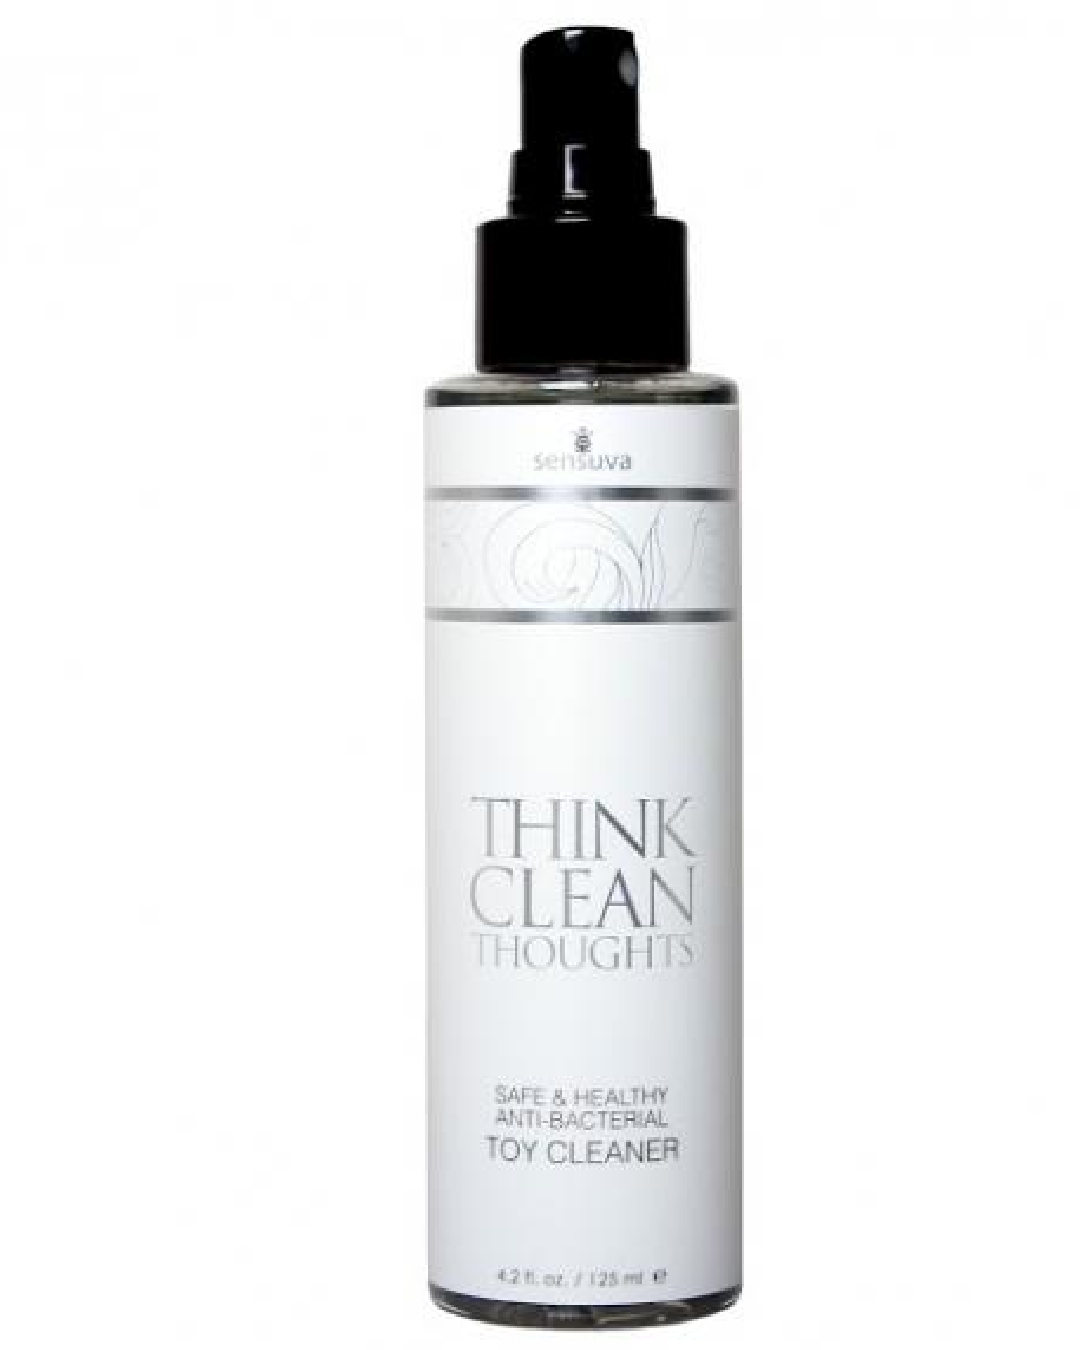 Think Clean Thoughts Healthy Antibacterial Toy Cleaner 4.2oz